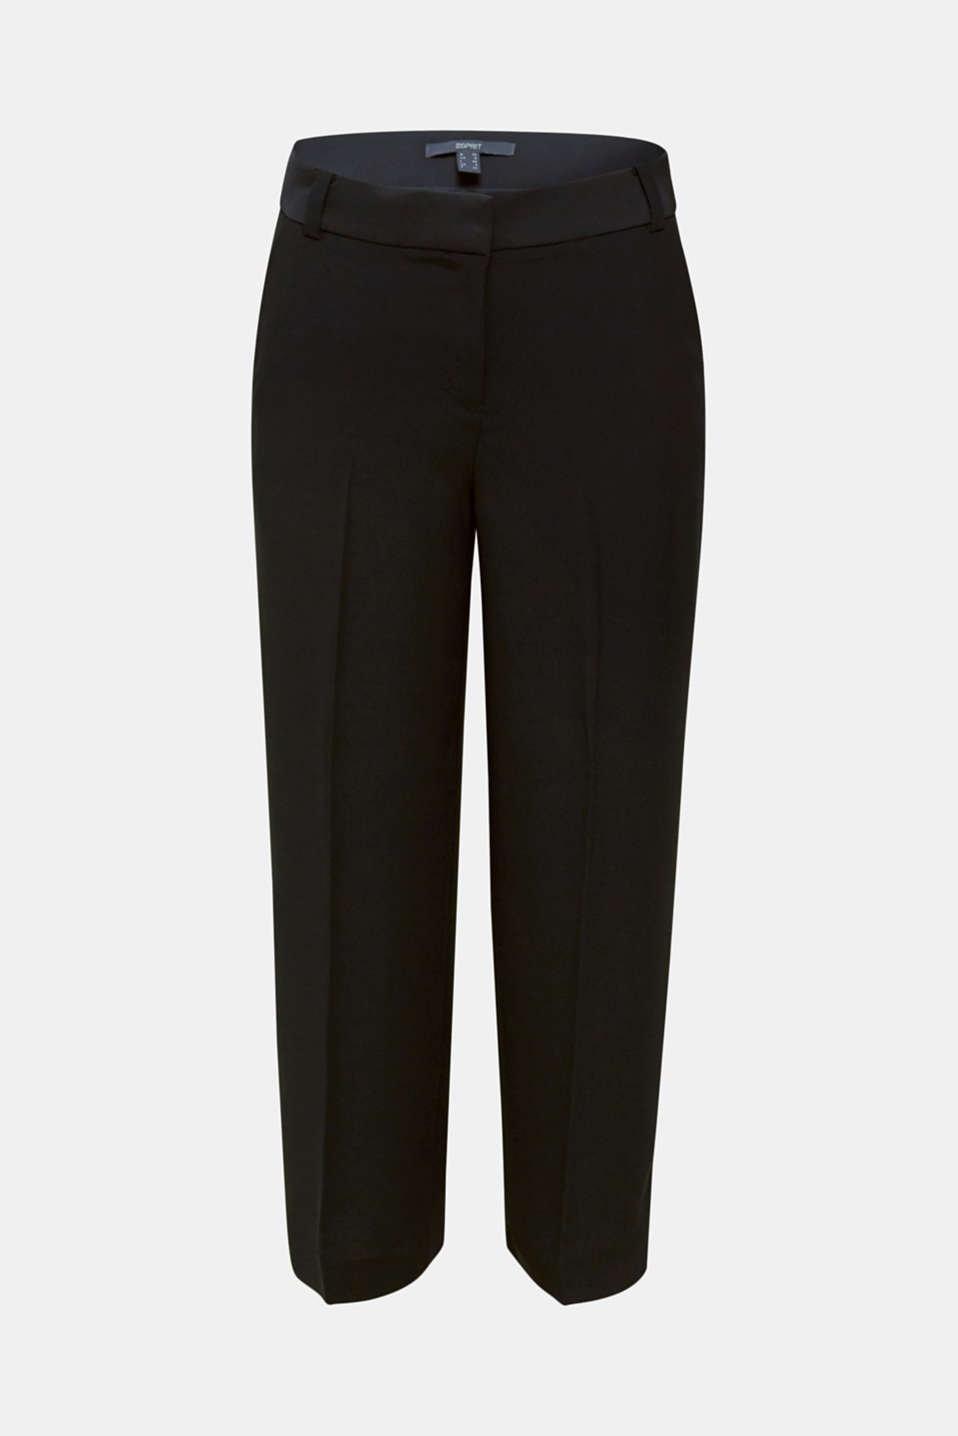 MATT SHINE mix + match culottes, BLACK, detail image number 6